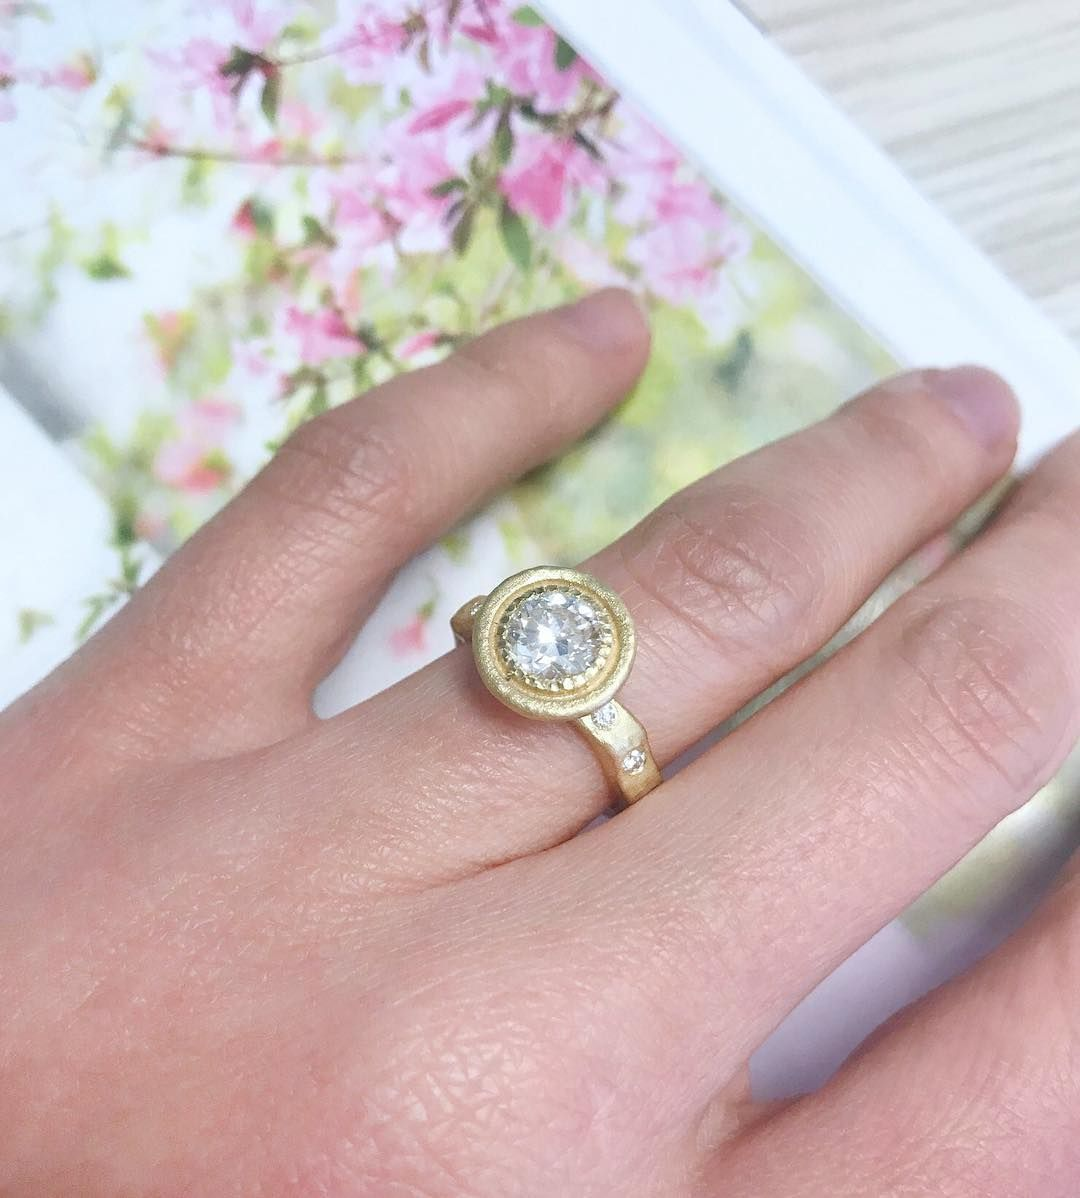 A non-traditional upscale engagement ring inspired by nature ...